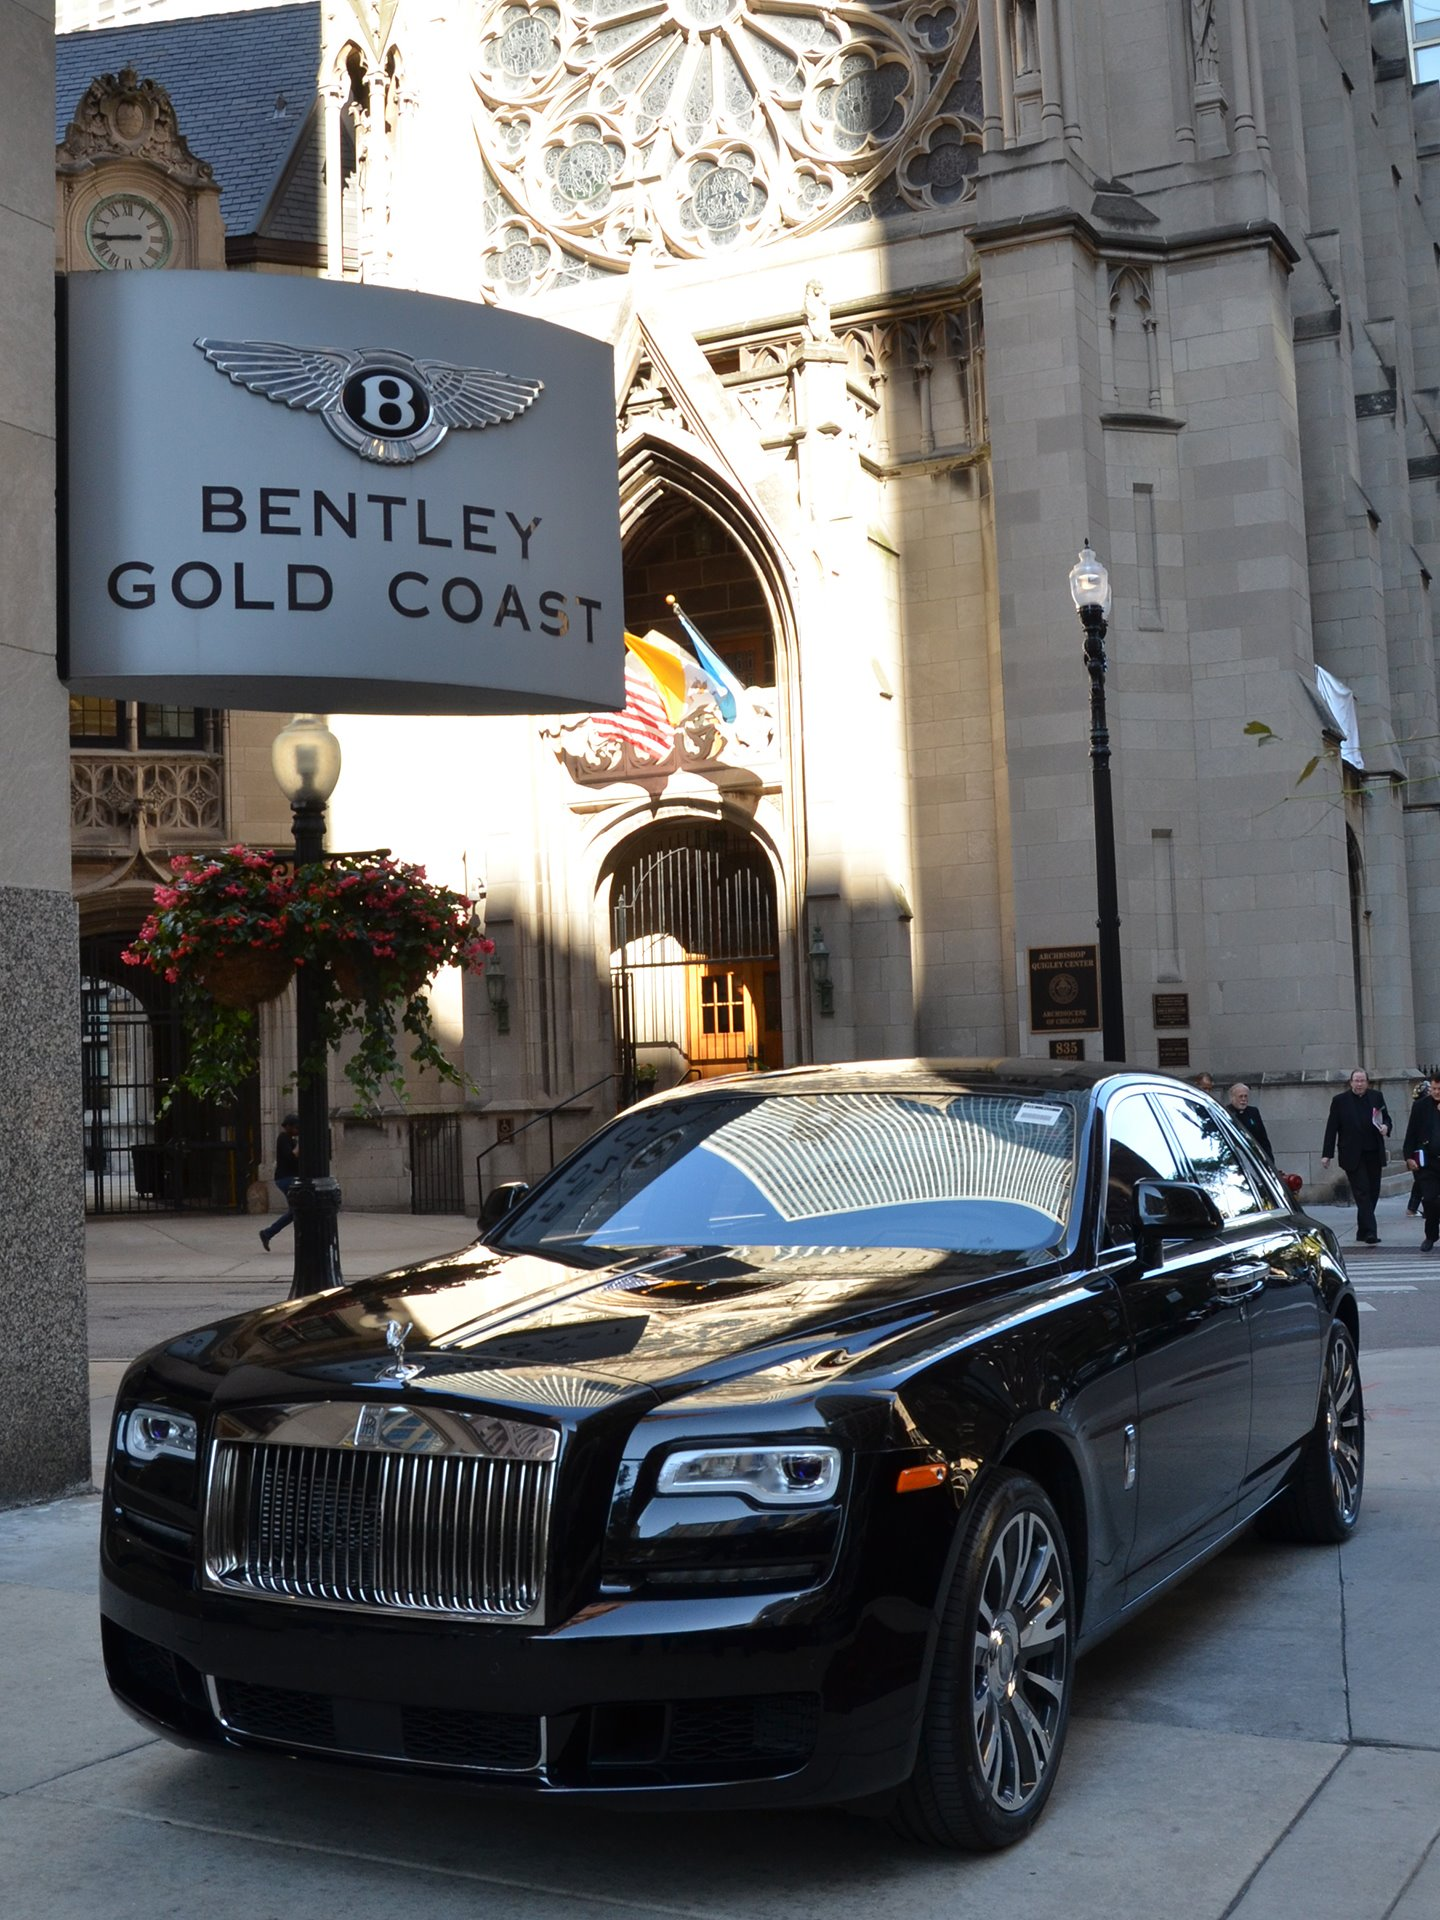 Bentley gold coast 834 north rush street chicago il for Gold coast bentley luxury motors